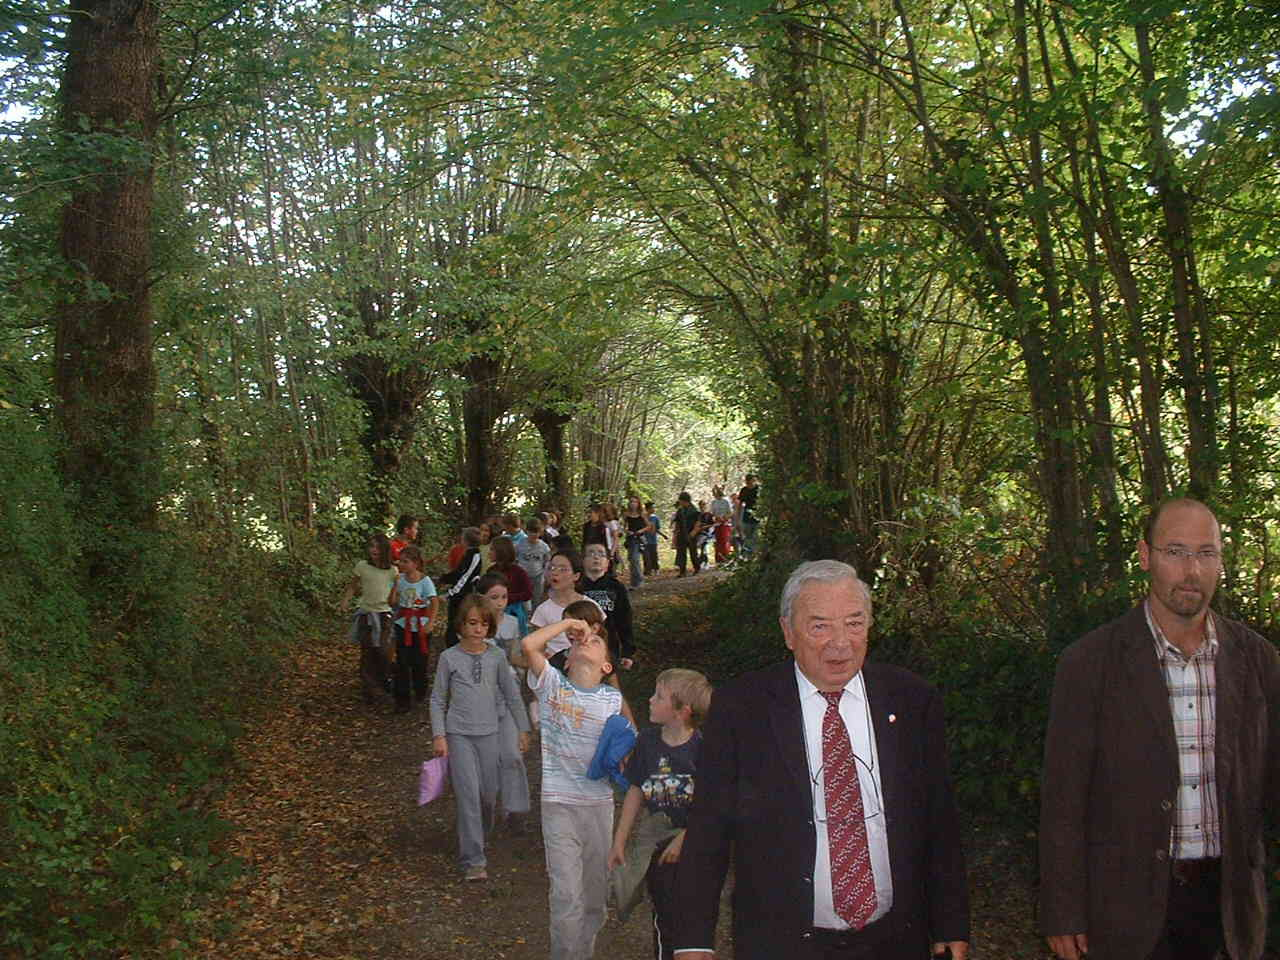 inauguration chemin nature sp pierre cour 18 sept 09-comp2